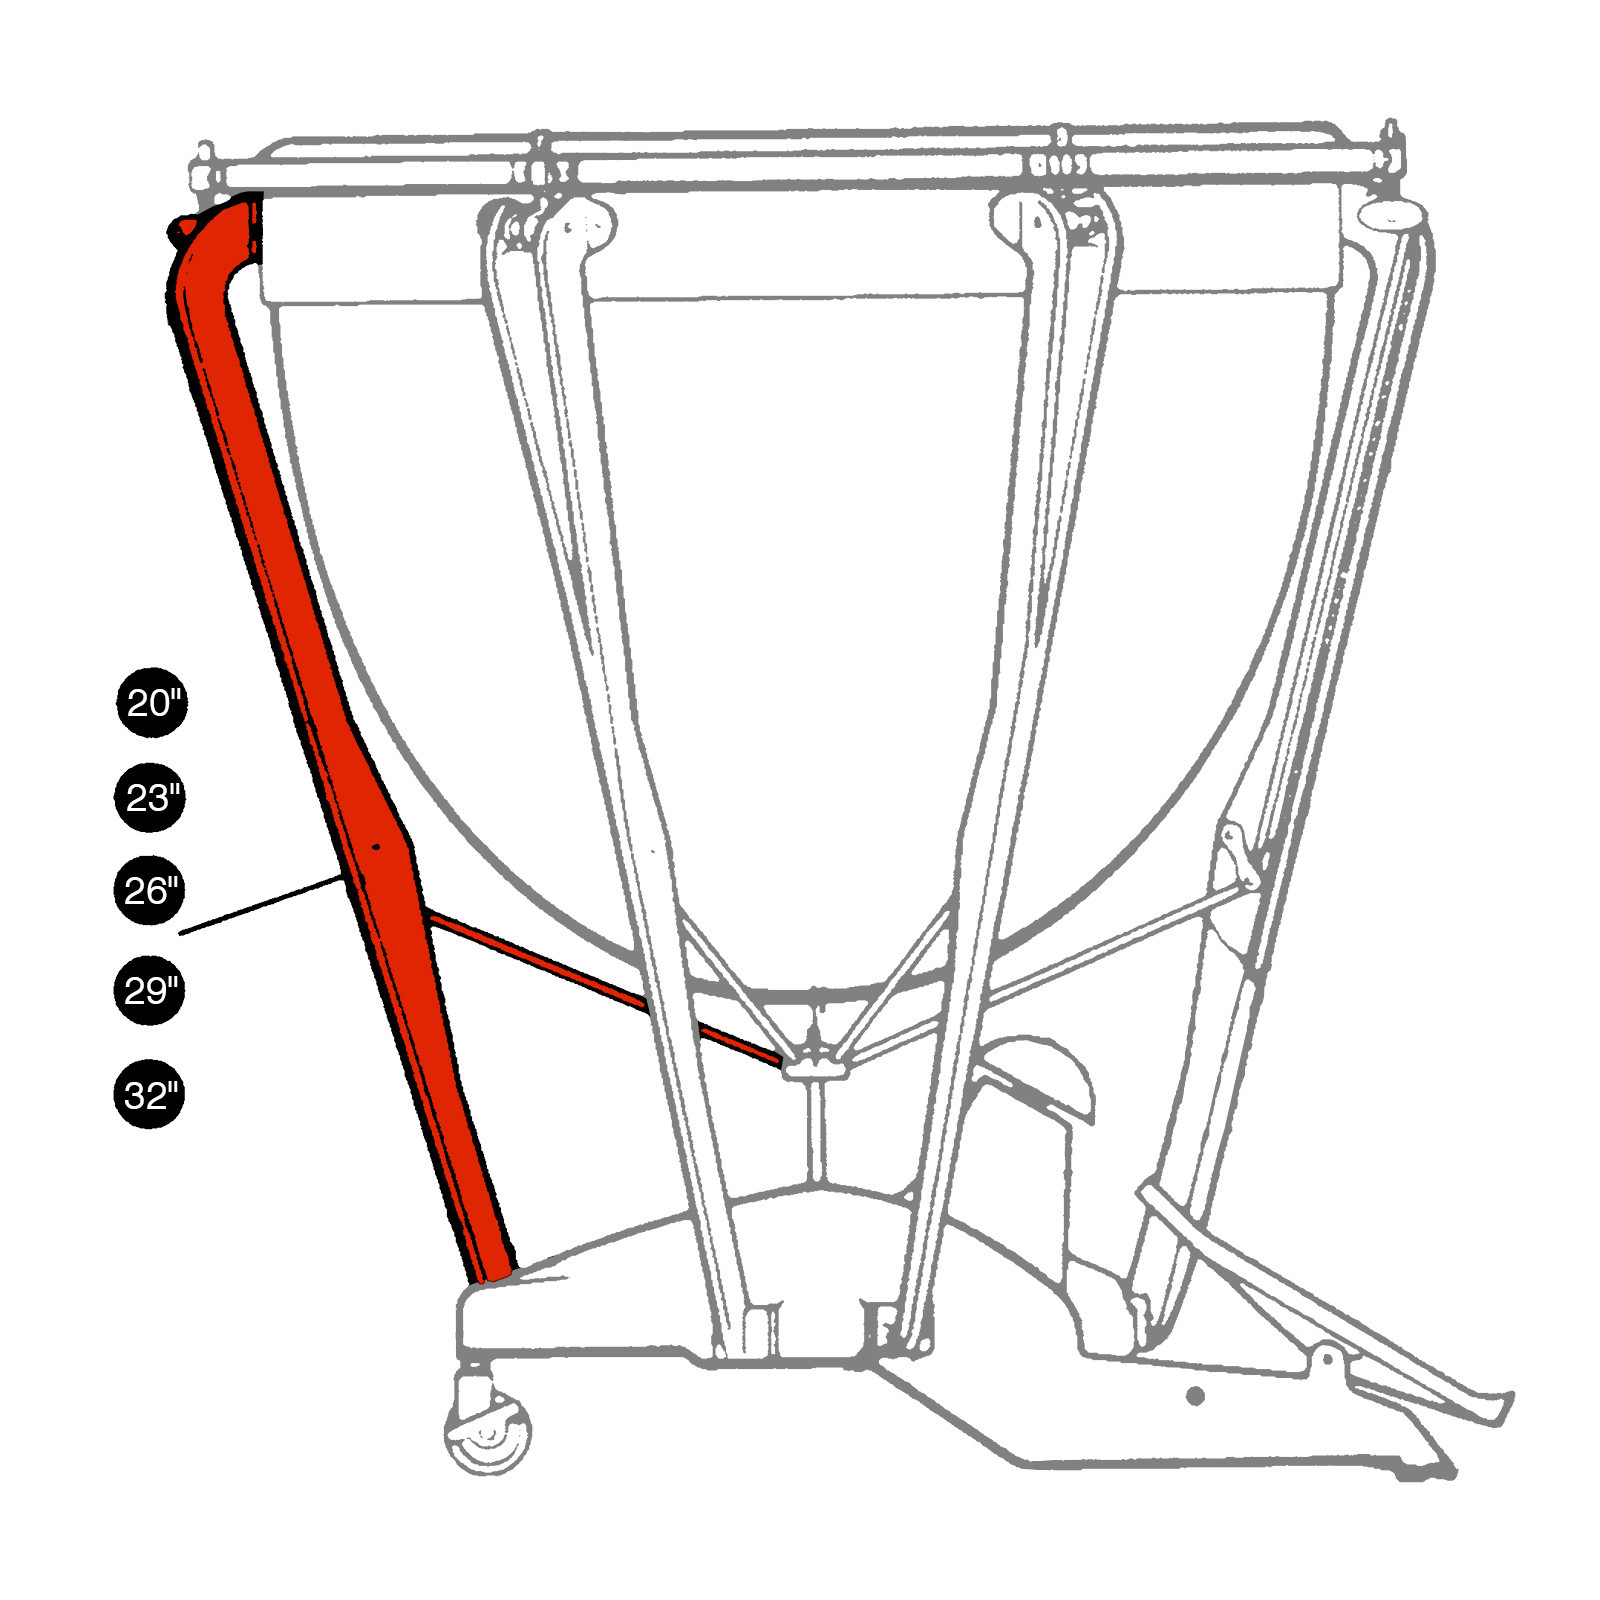 ludwig 20 u0026quot  strut assembly for grand symphonic timpani labeled diagram timpani labeled diagram timpani labeled diagram timpani labeled diagram